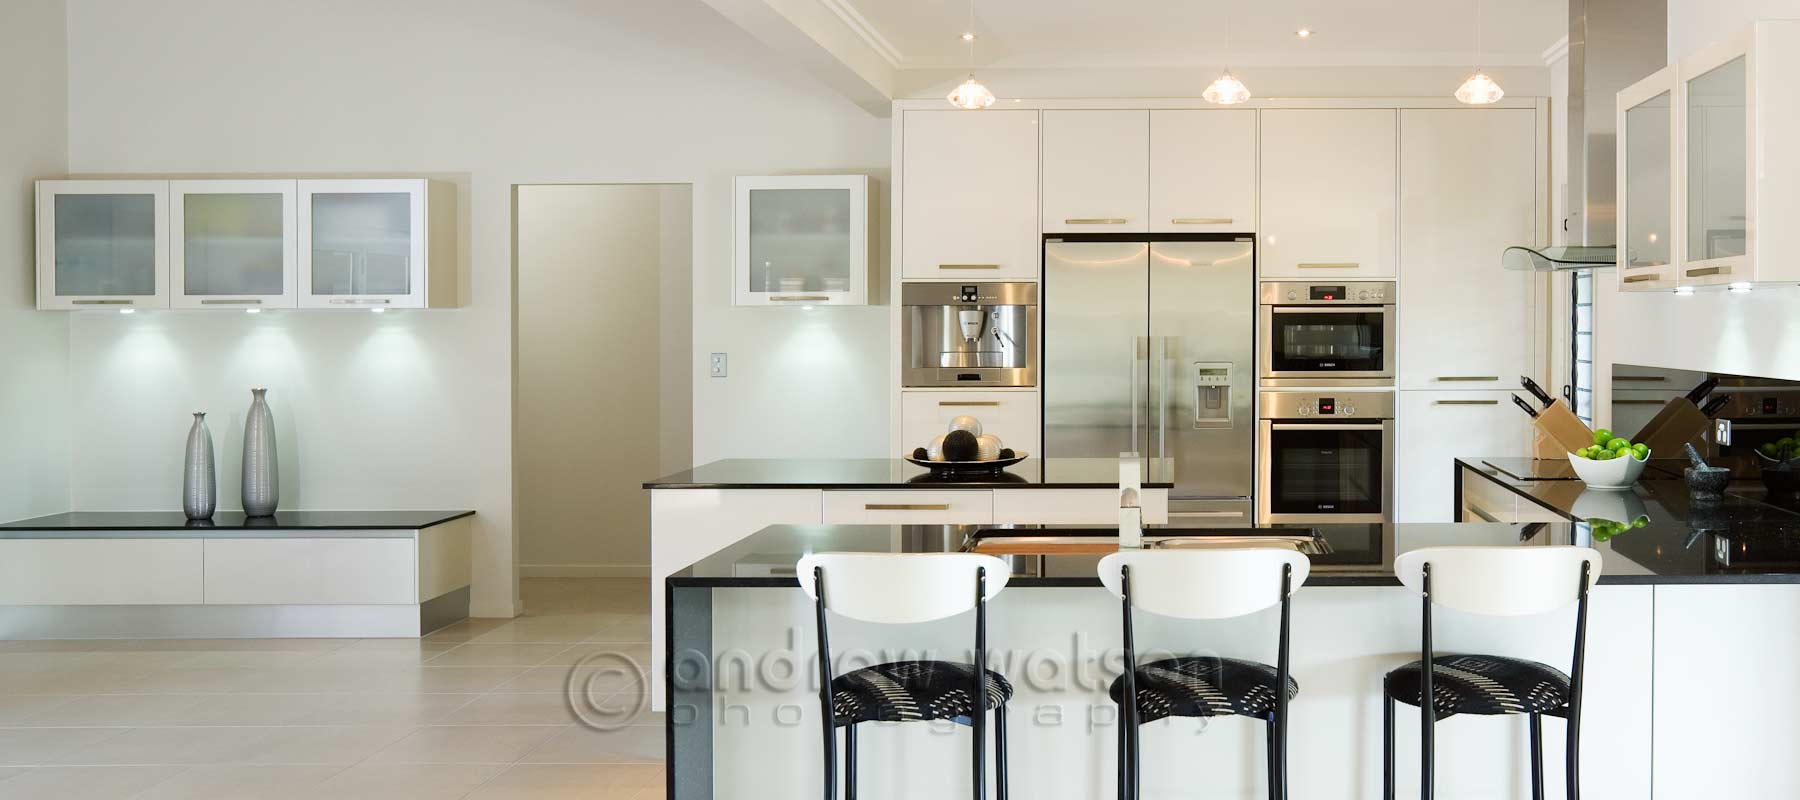 Interior Photography   New Kitchen Installation. Lifestyle: Residential